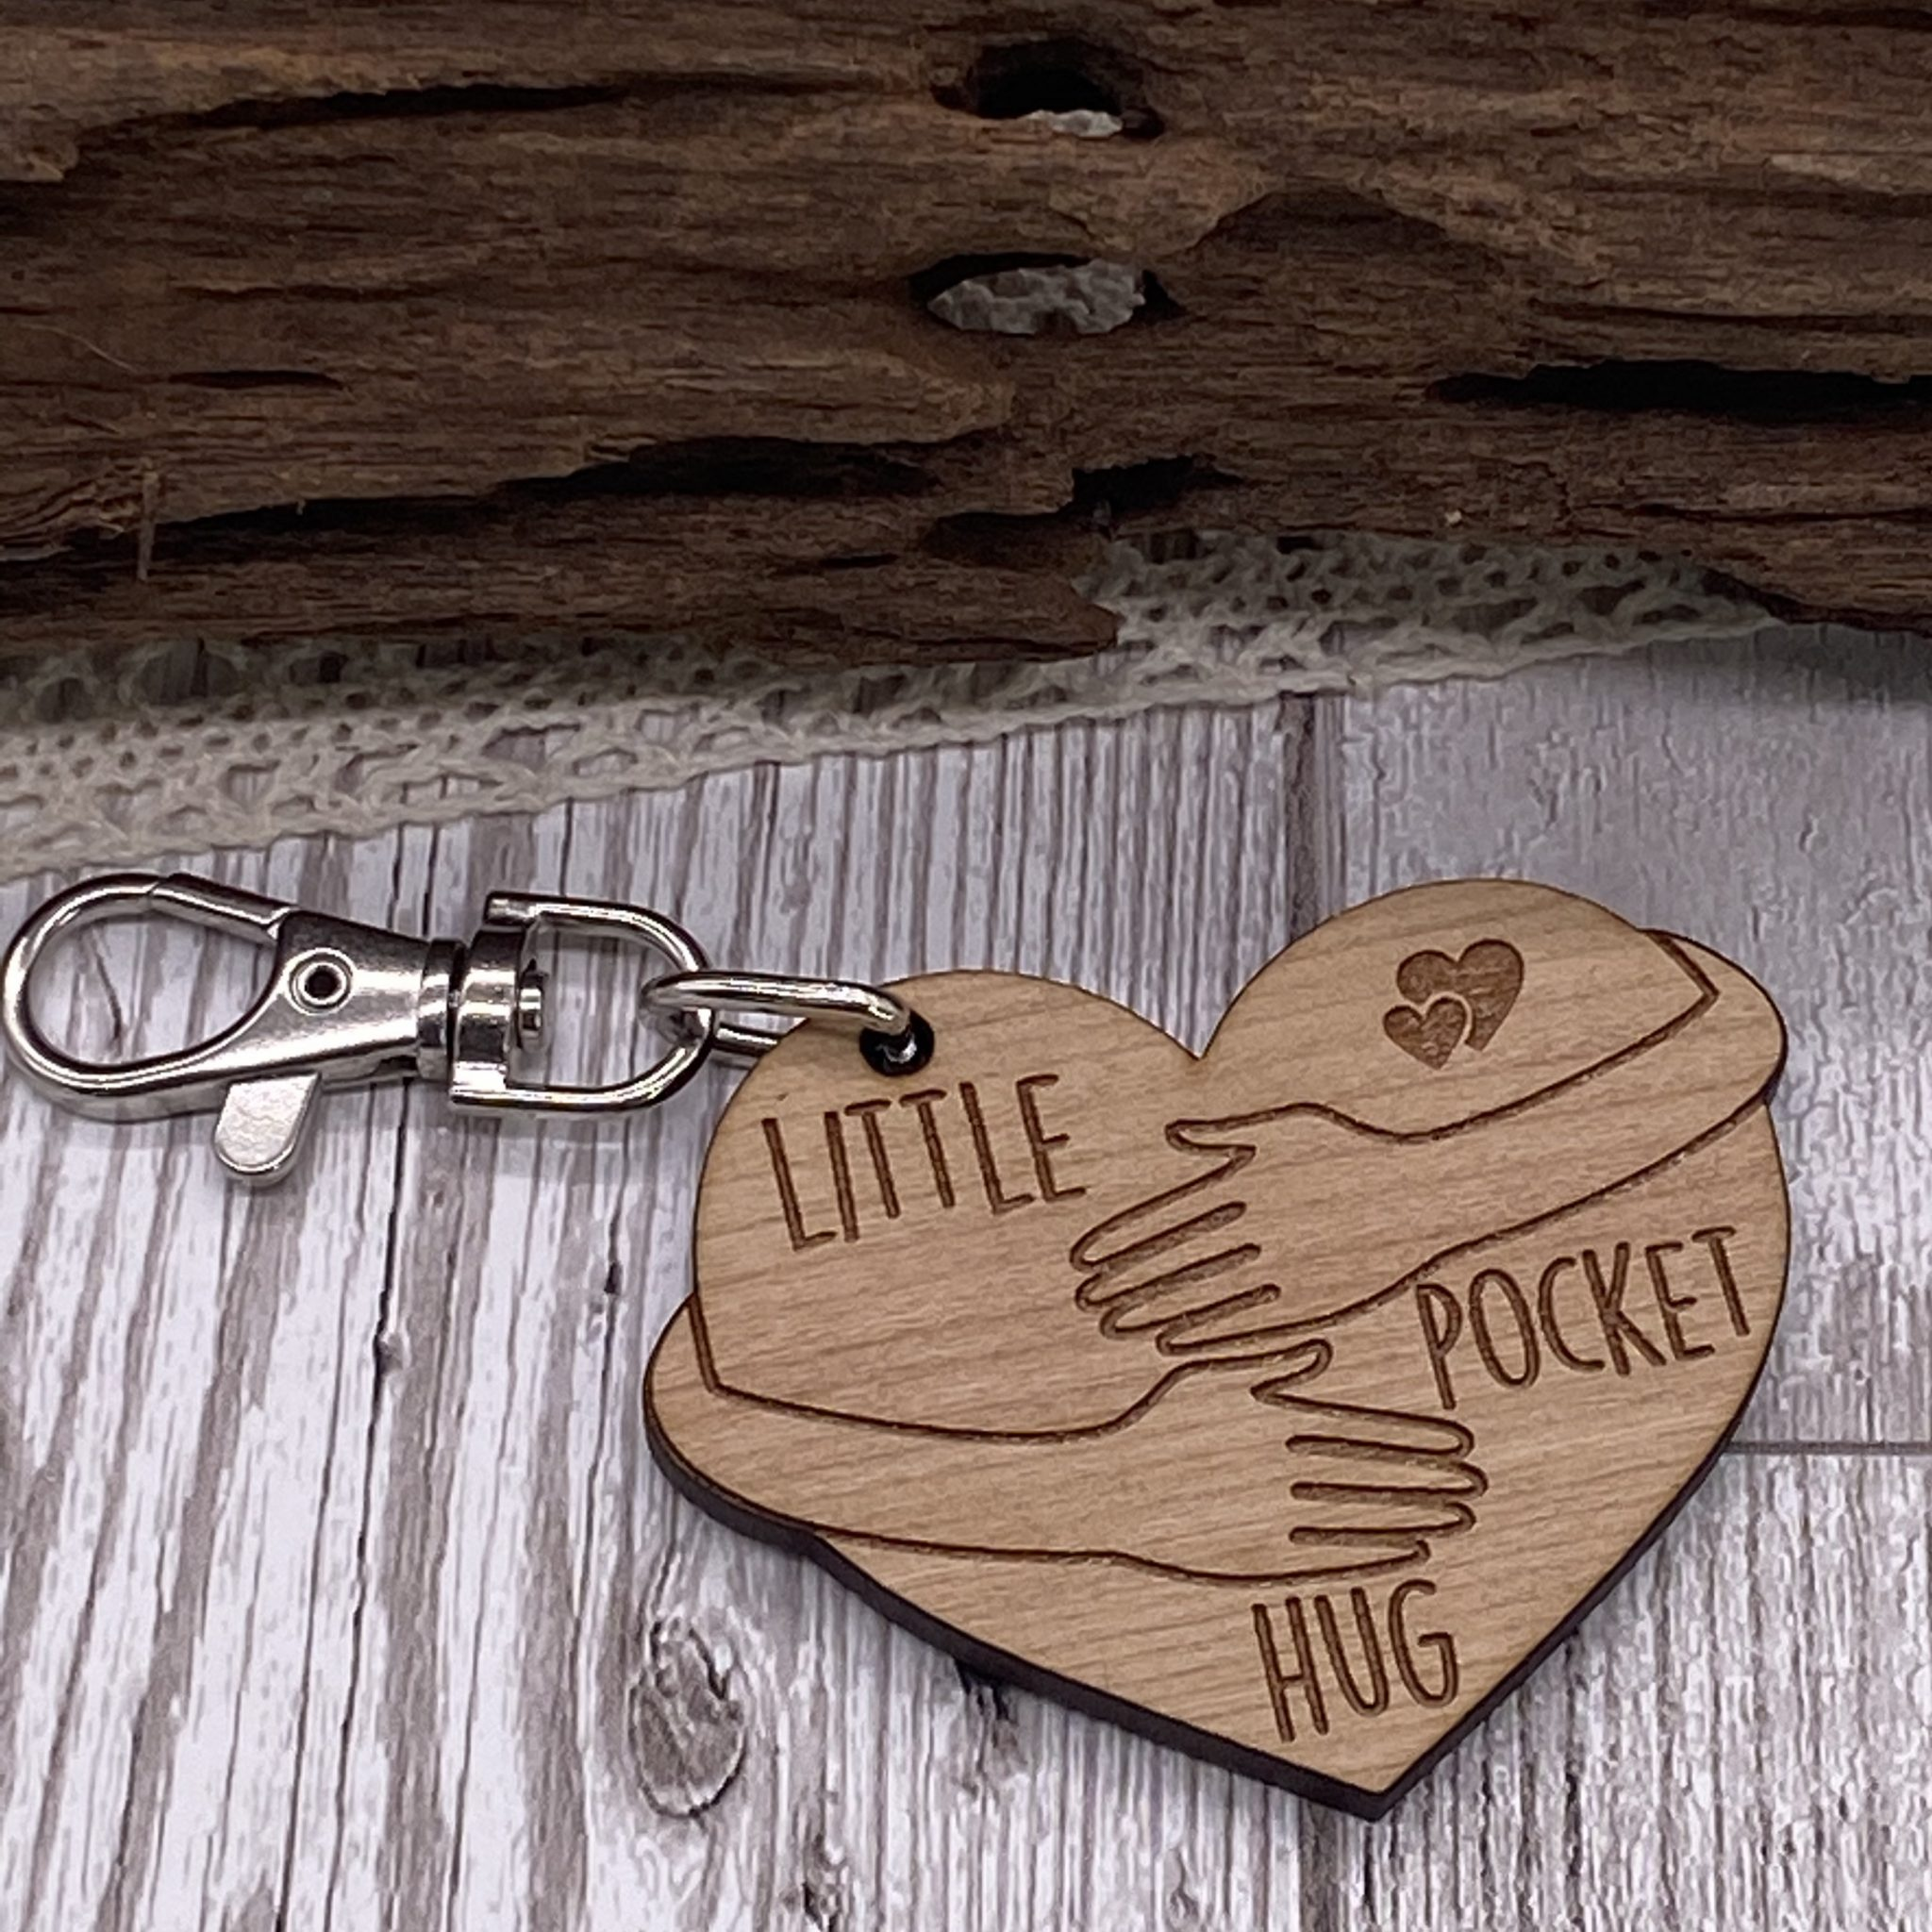 Little Gifts With Love - Little Pocket Hug Heart Loved Ones in need Hug NHS, Keyworker Keyring Gift